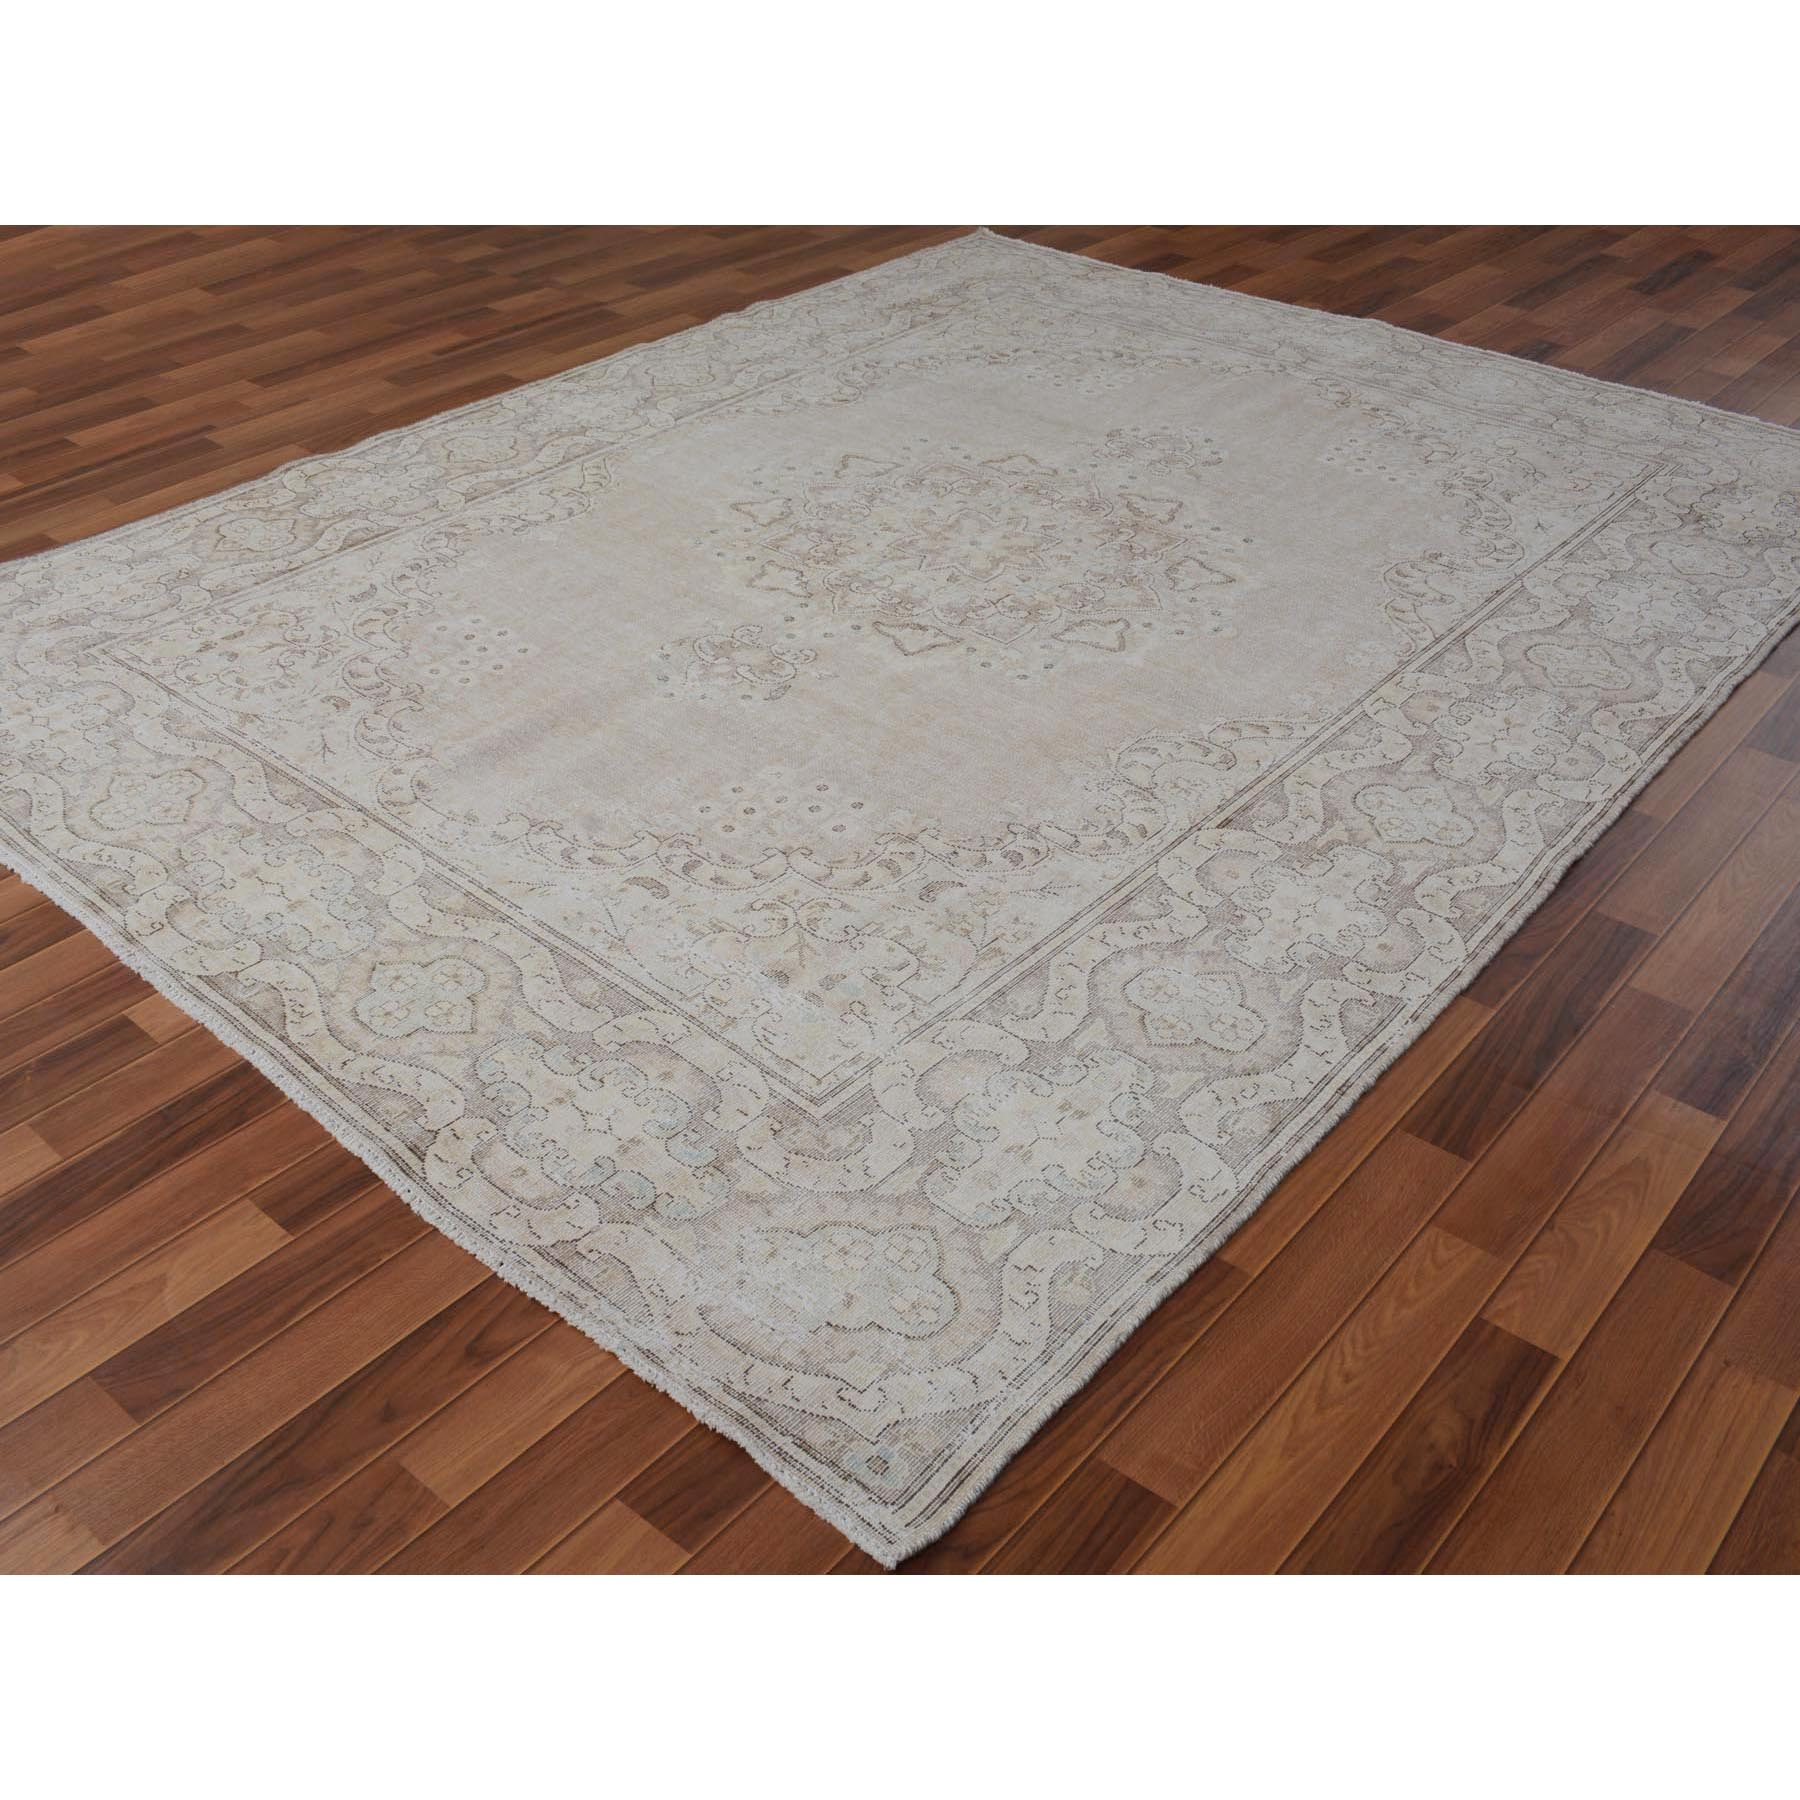 "8'x10'5"" Beige Washed Out and Worn Down Vintage Persian Kerman Pure Wool Hand Woven Oriental Rug"